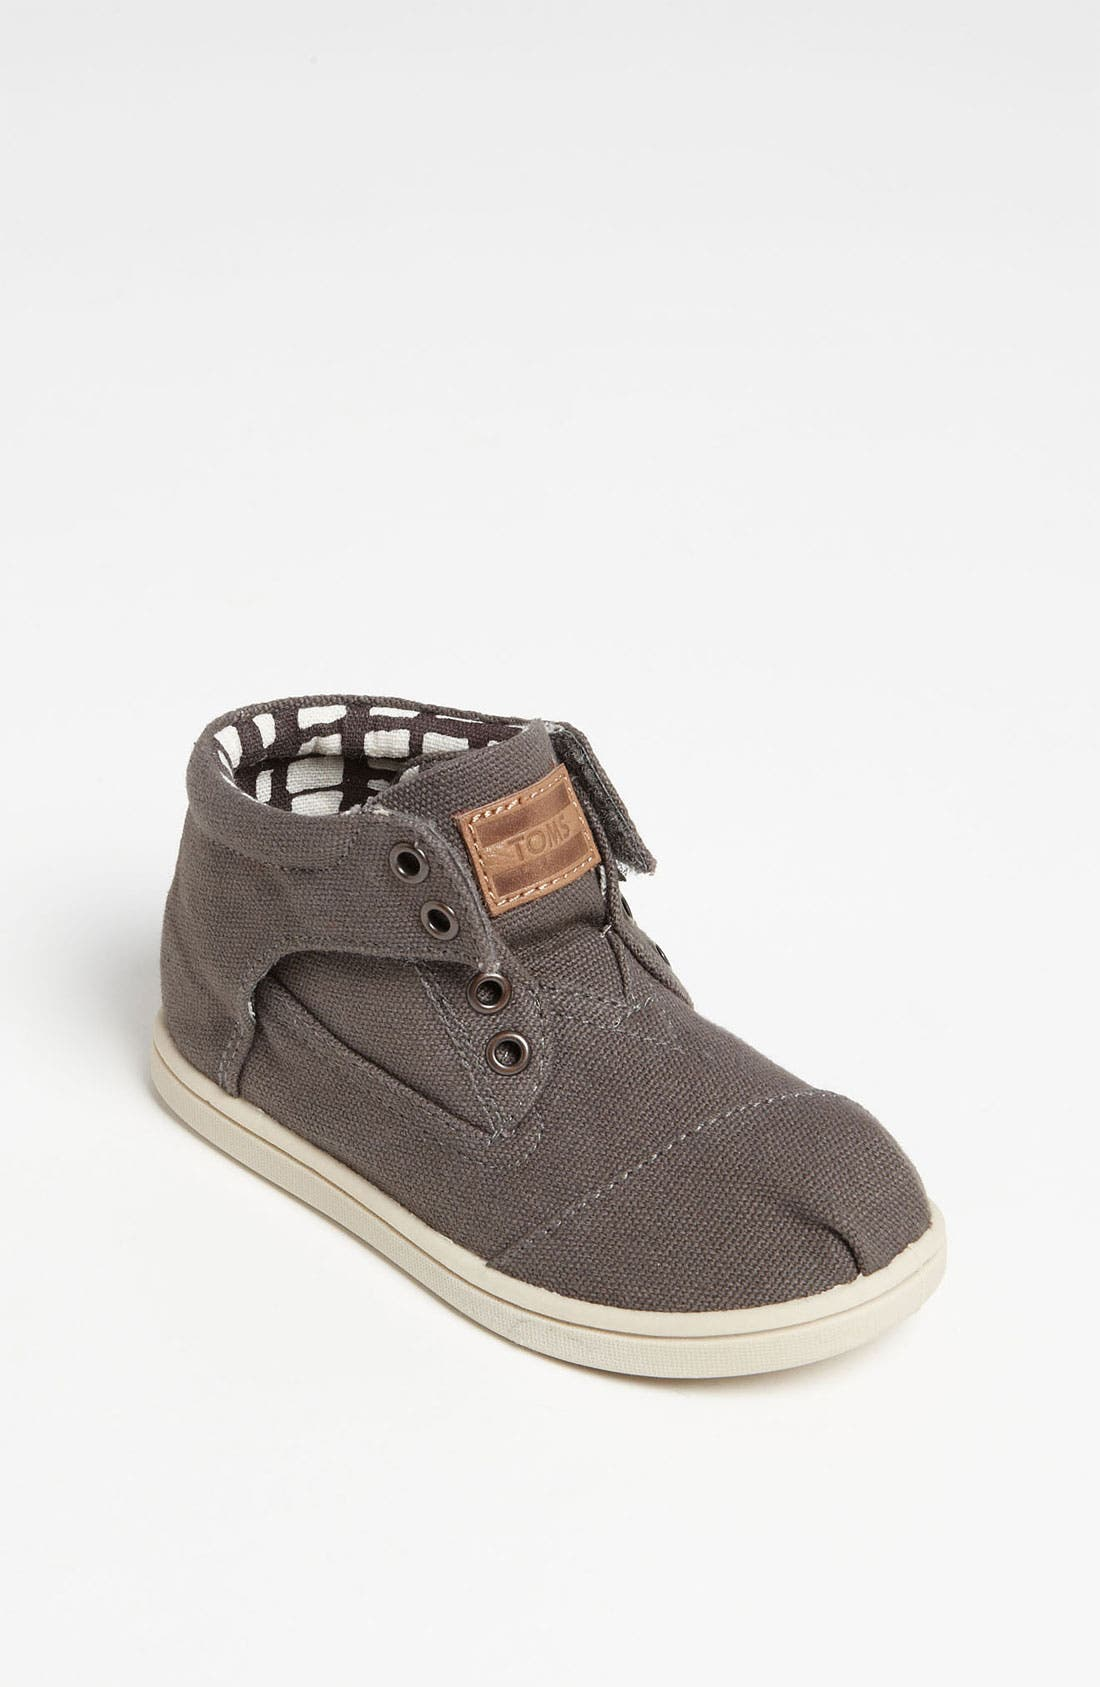 Main Image - TOMS 'Botas - Tiny' Canvas Boot (Baby, Walker & Toddler)